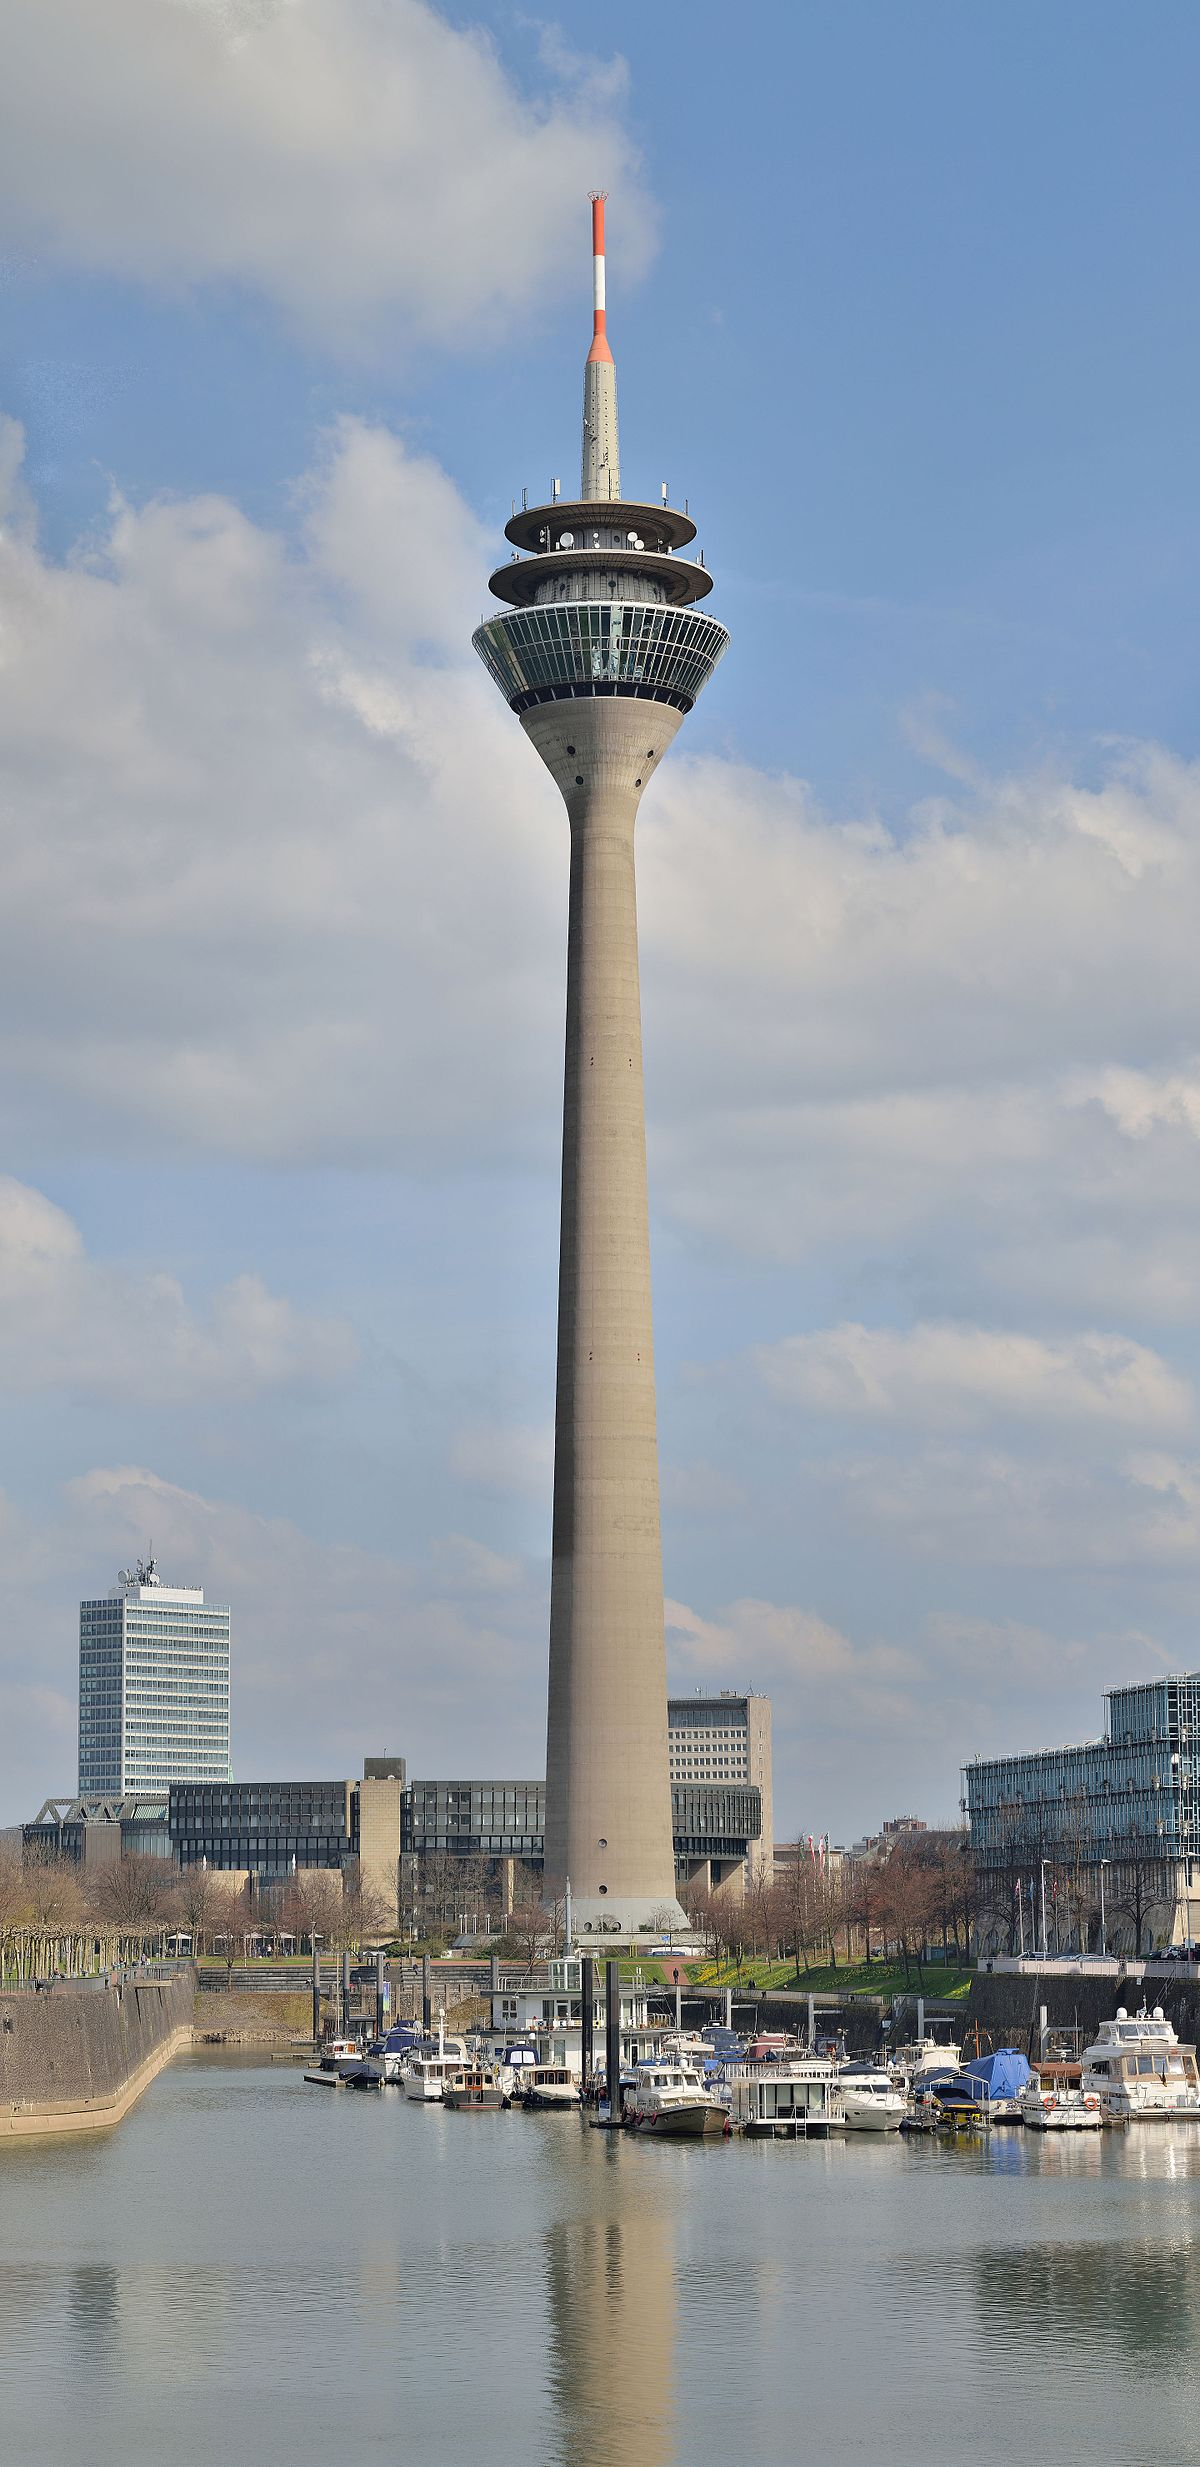 Tower in dusseldorf photo